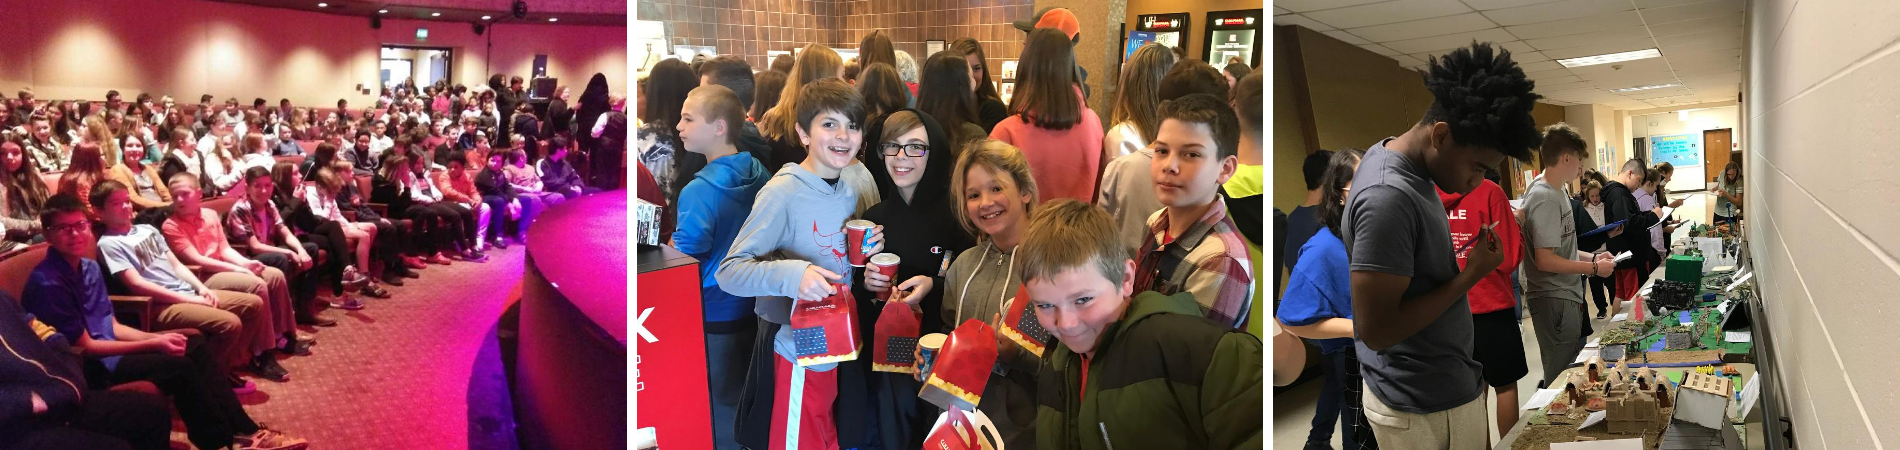 3 photo collage: Left: 7th graders attend a field trip to a theater. Center: 6th grade students are on a HAWK (reward) field trip. Right: Student evaluates projects on display.